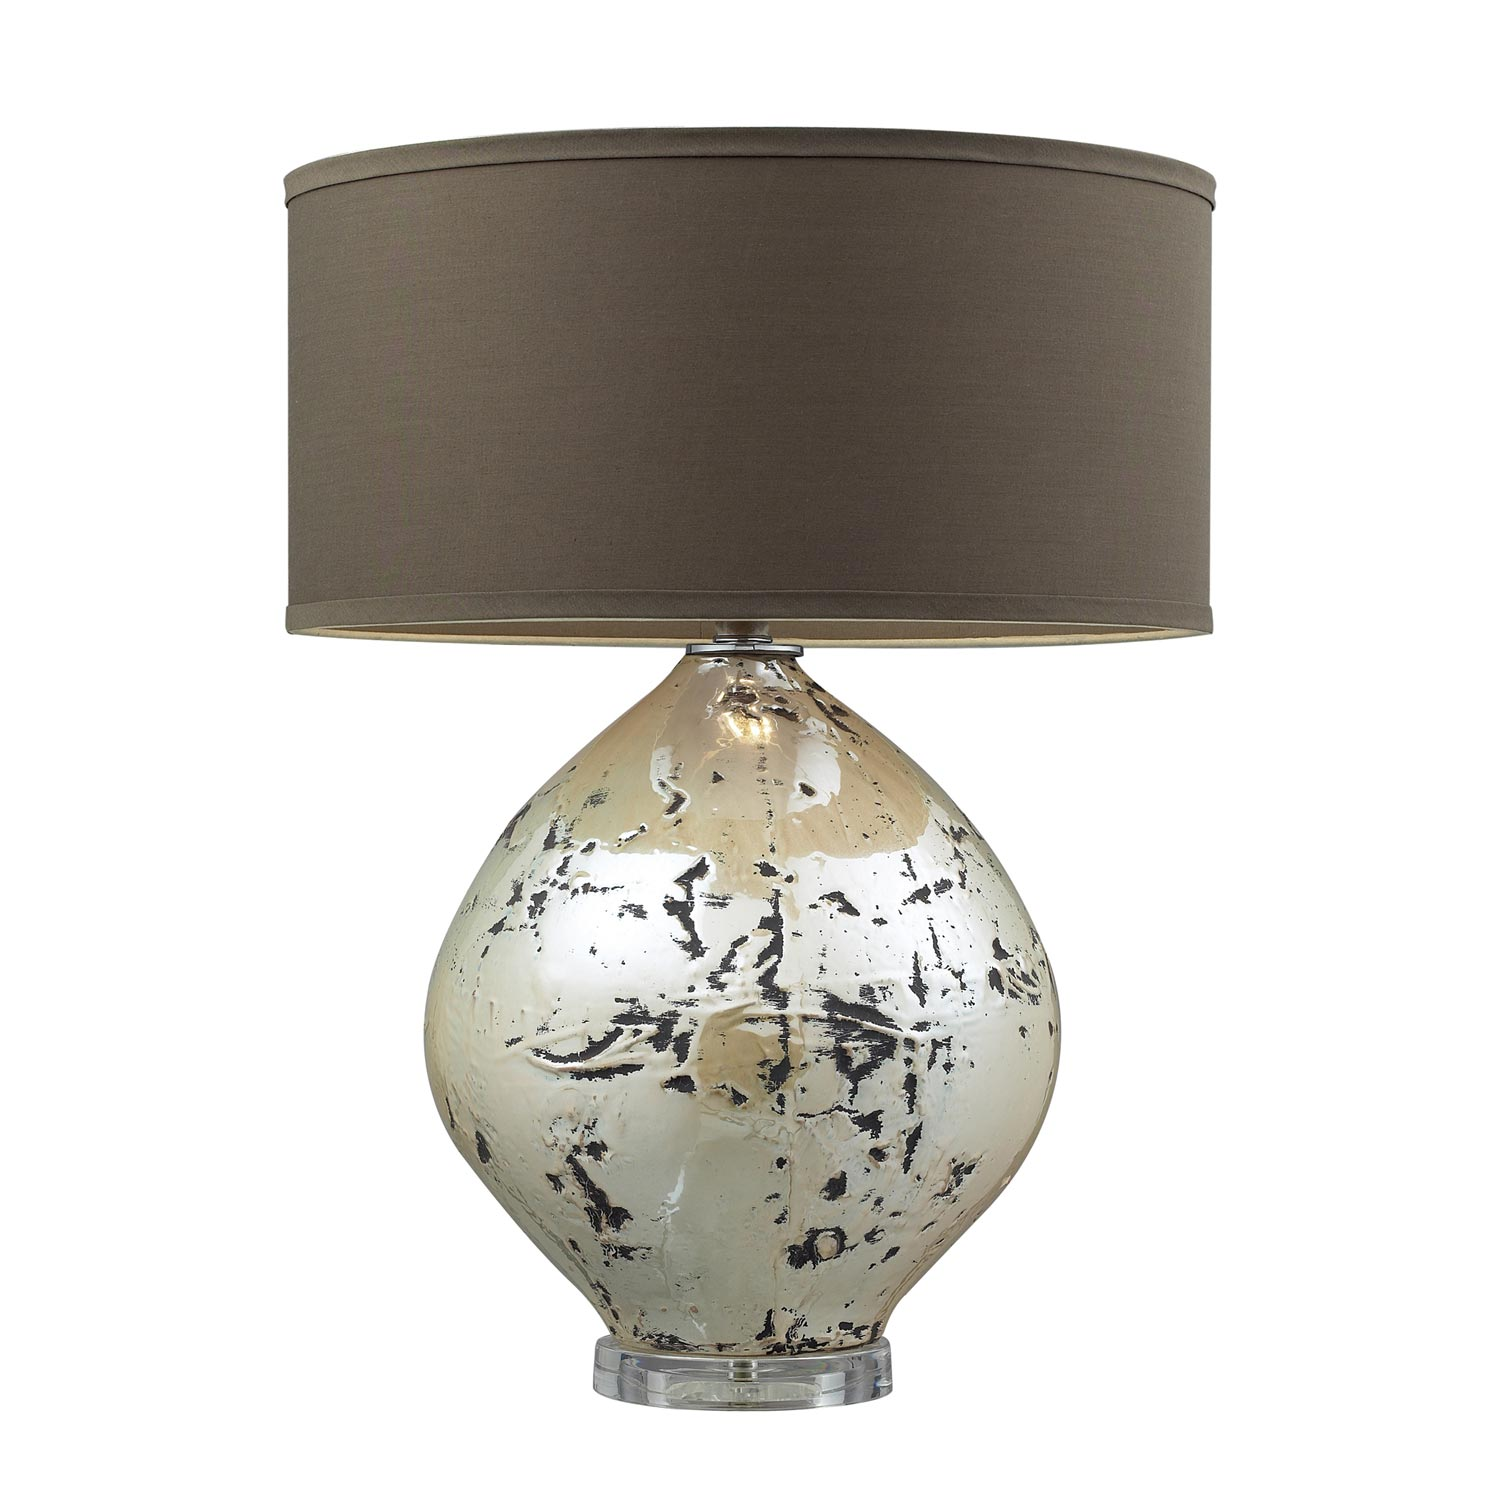 Elk Lighting D2262 Limerick Table Lamp - Turrit Gloss Beige